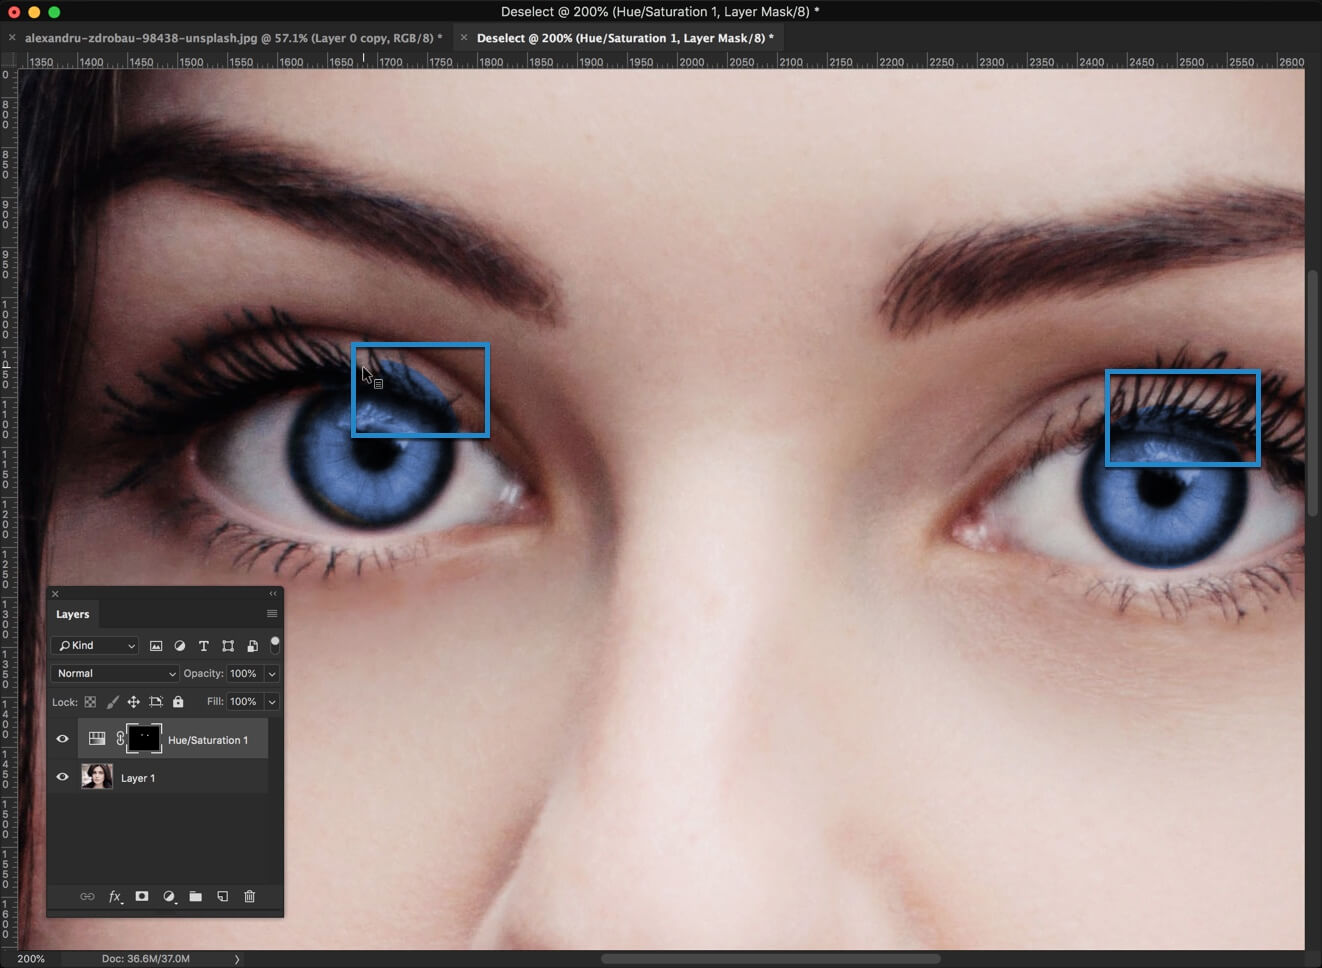 5 - Change Eye Color in Photoshop in 1 Minute